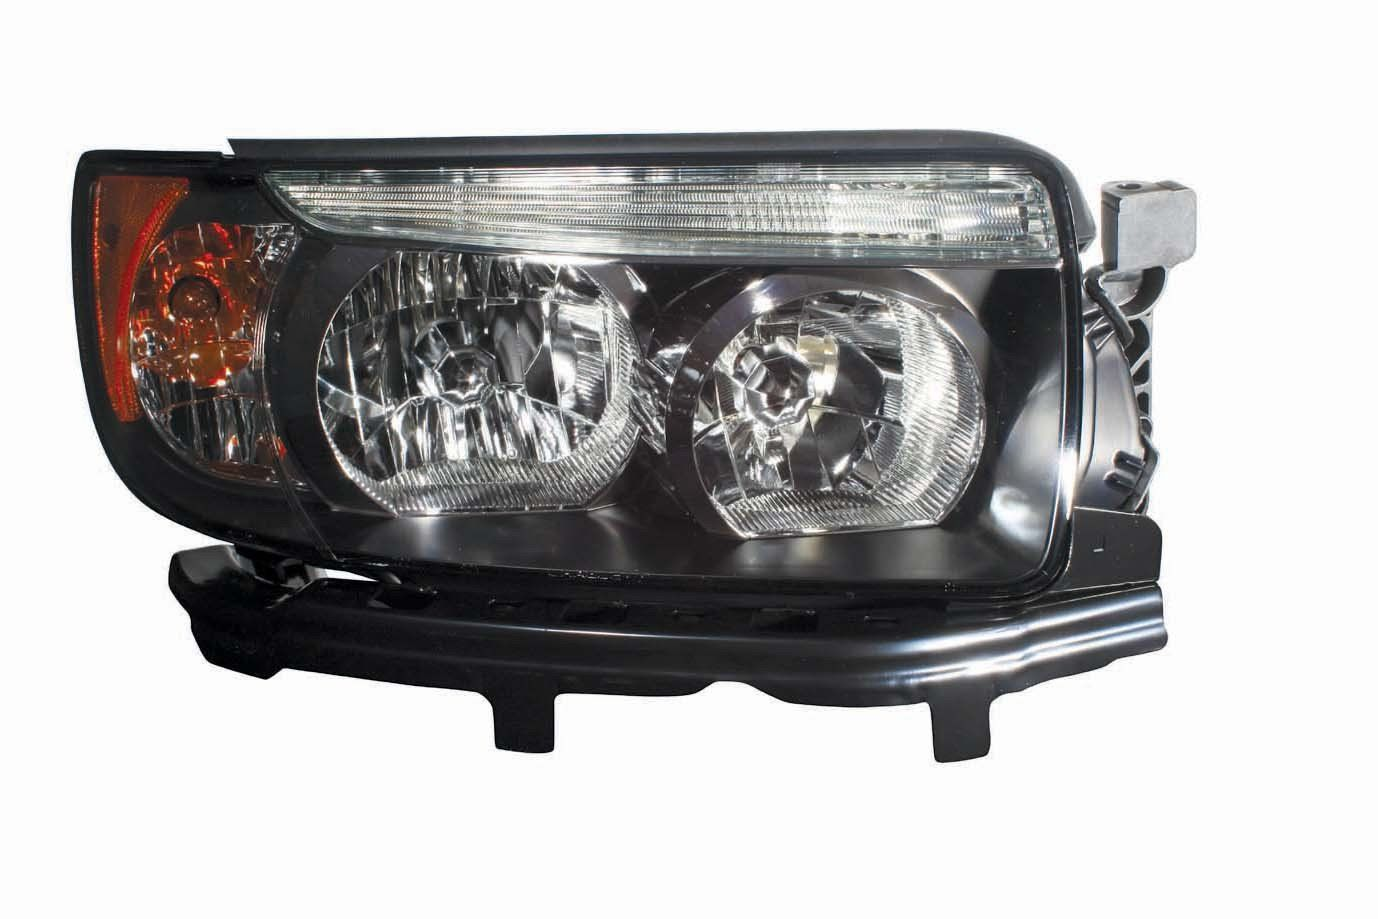 Subaru Forester 07 08 Headlight Embly With Sport Package Rh Usa Penger Side